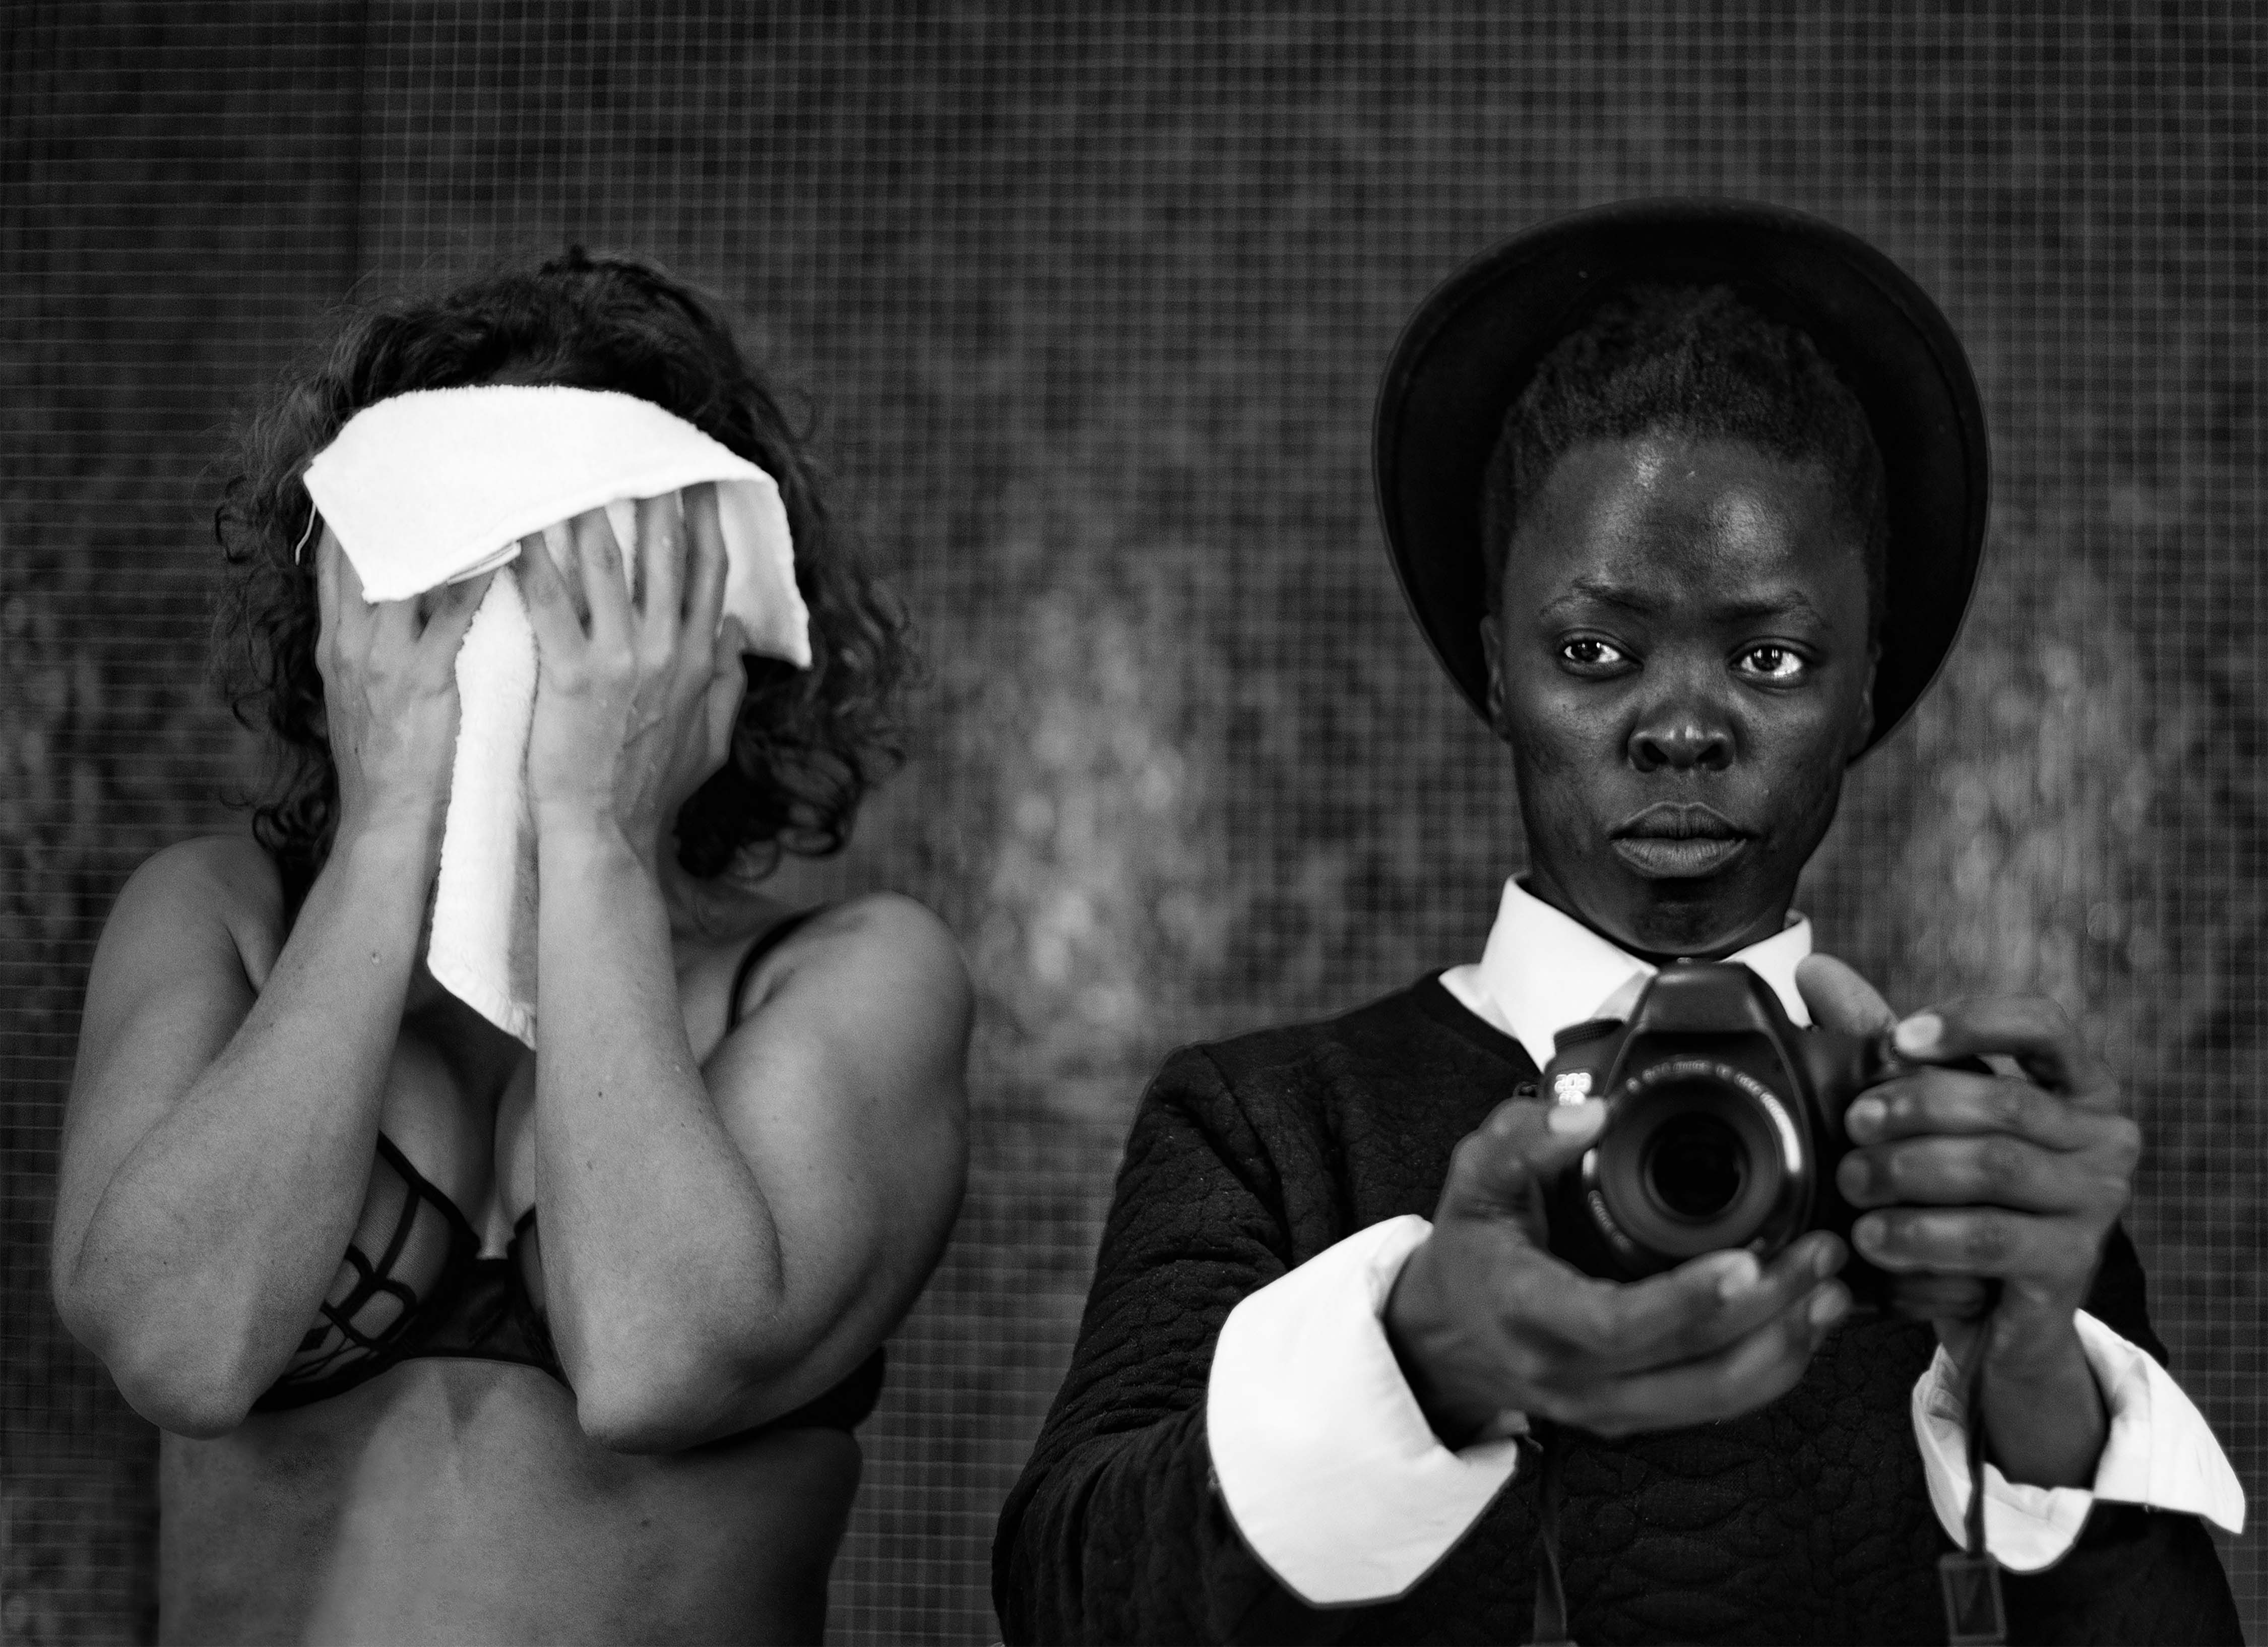 zanele-muholi-zava-amsterdam-2014-press